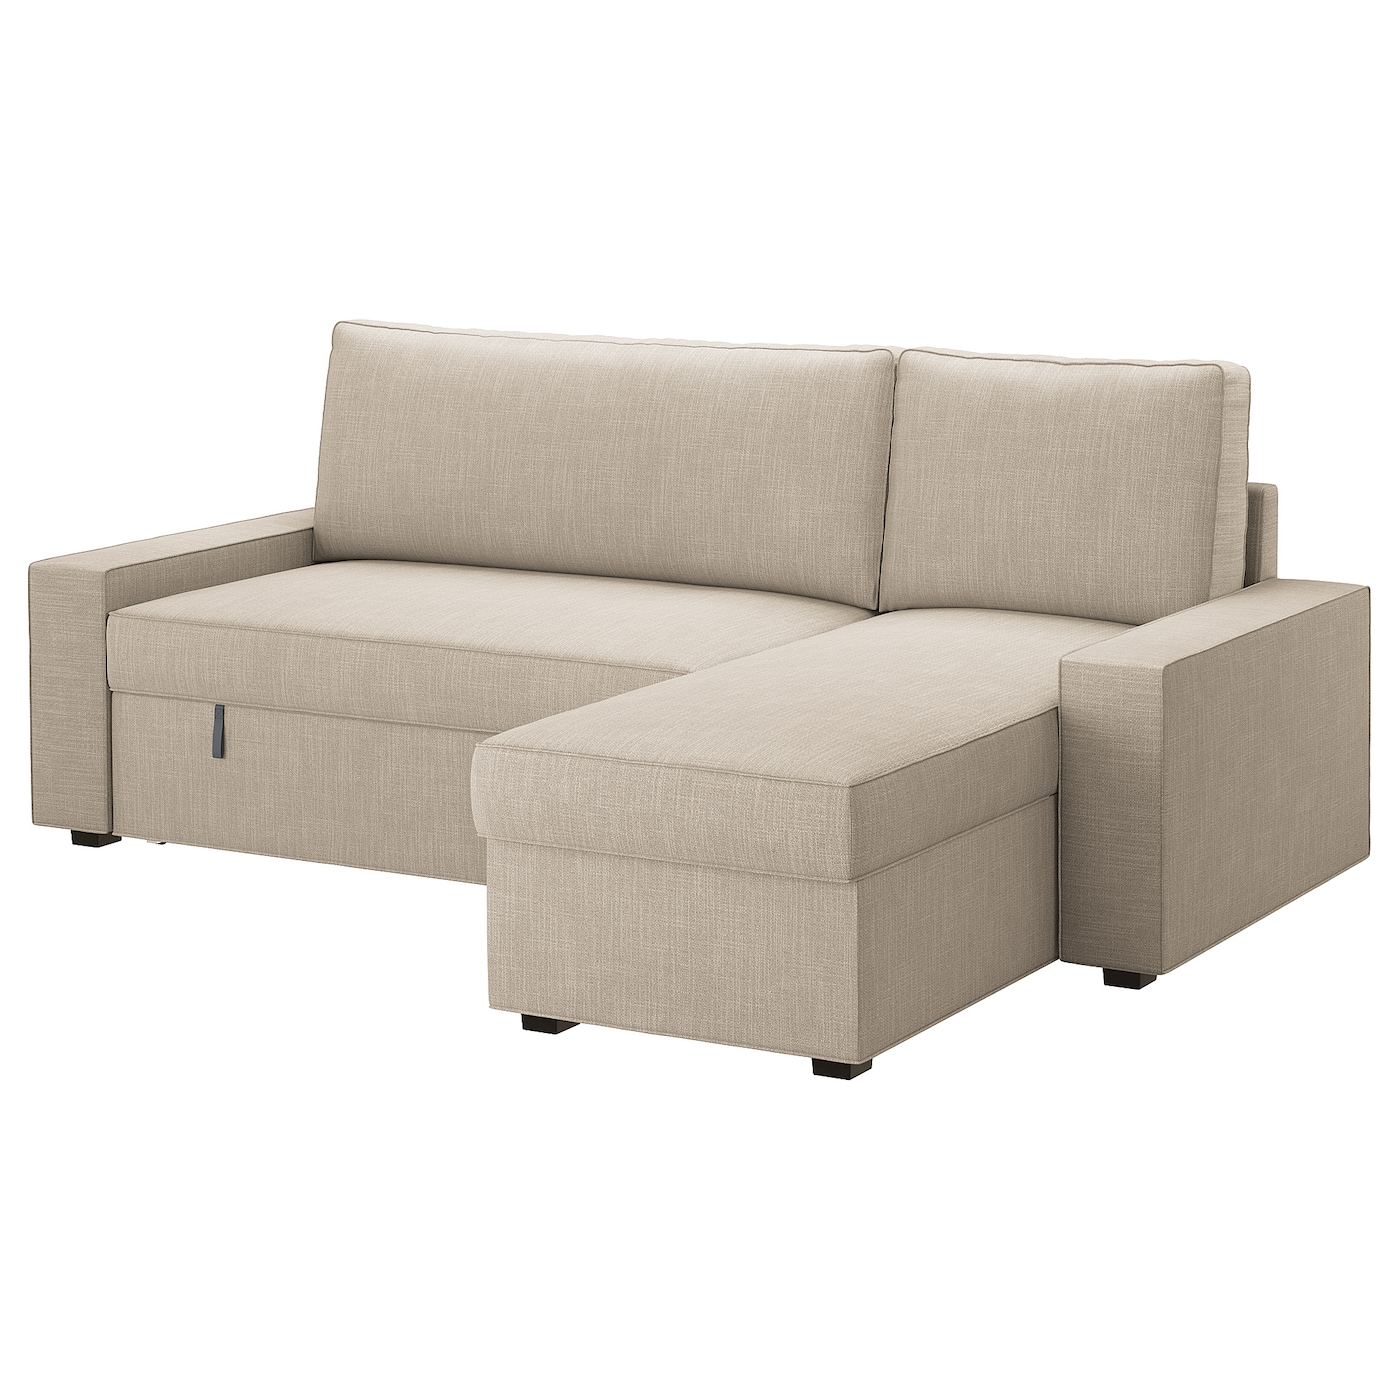 Vilasund sofa bed with chaise longue hillared beige ikea for Chaise longue sofa cama